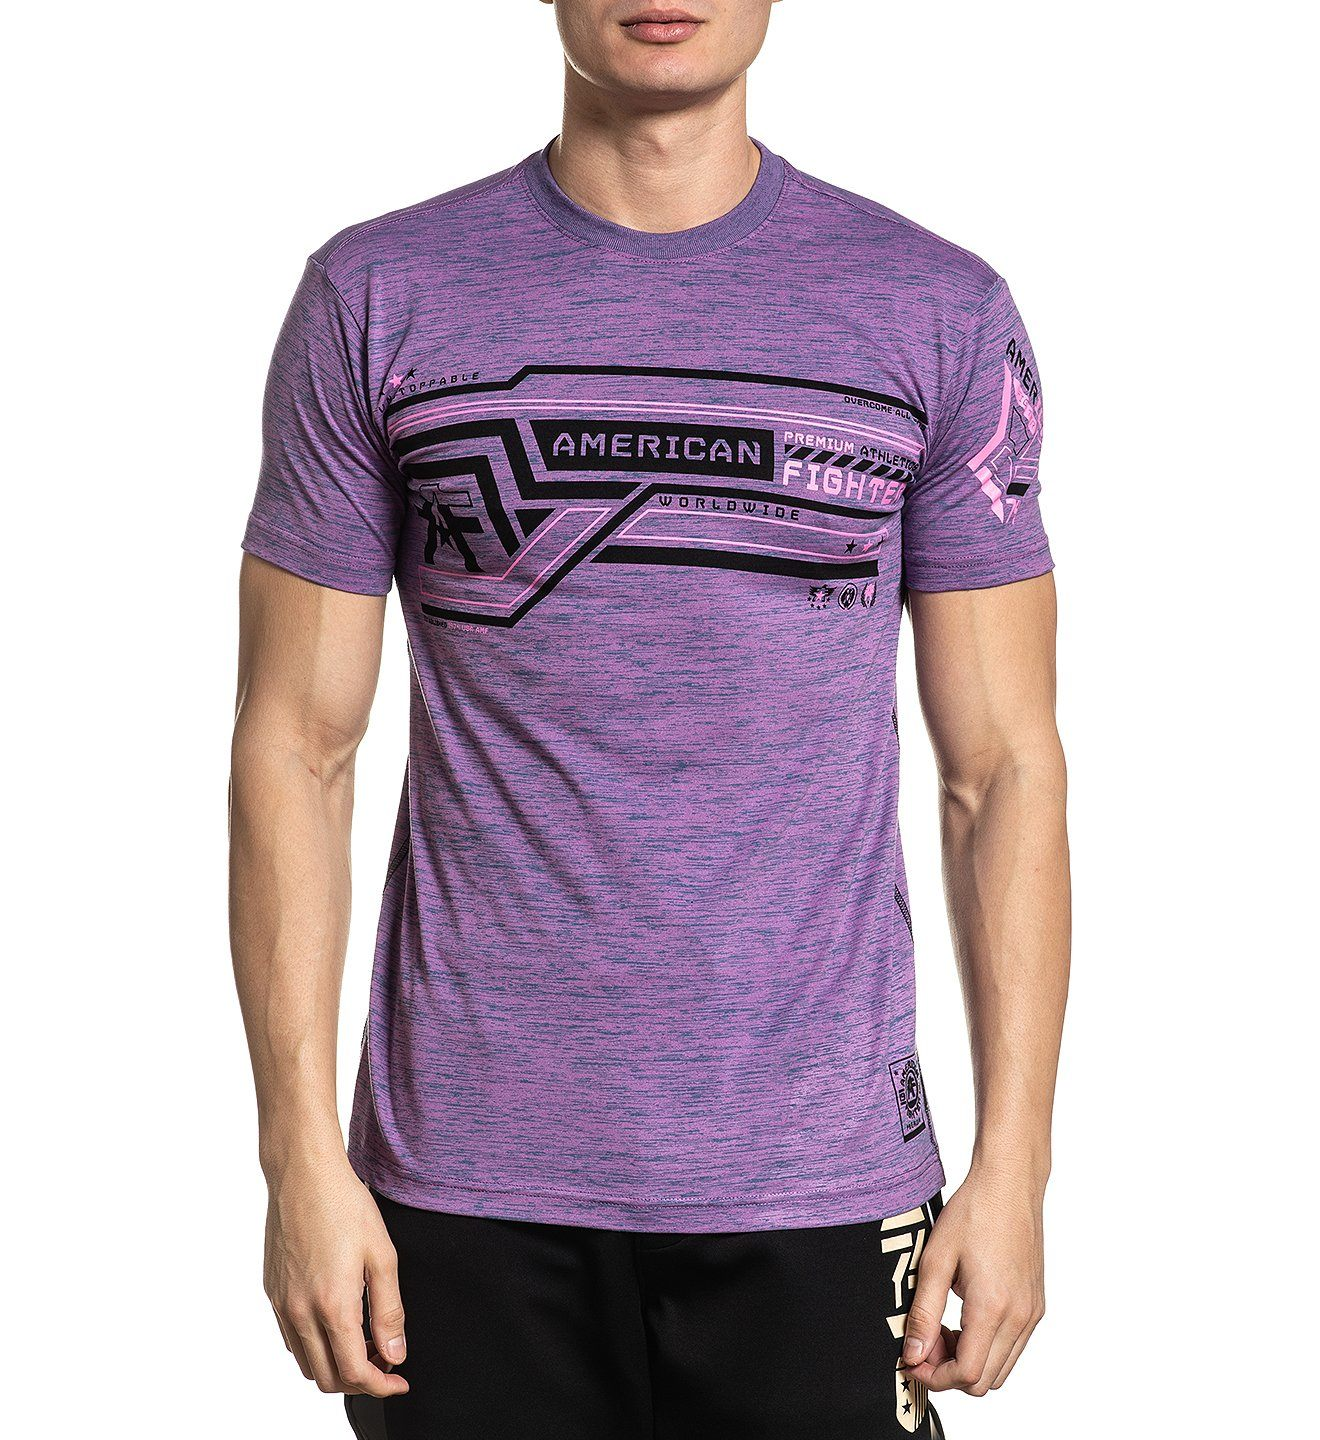 Craigmont - Mens Short Sleeve Tees - American Fighter